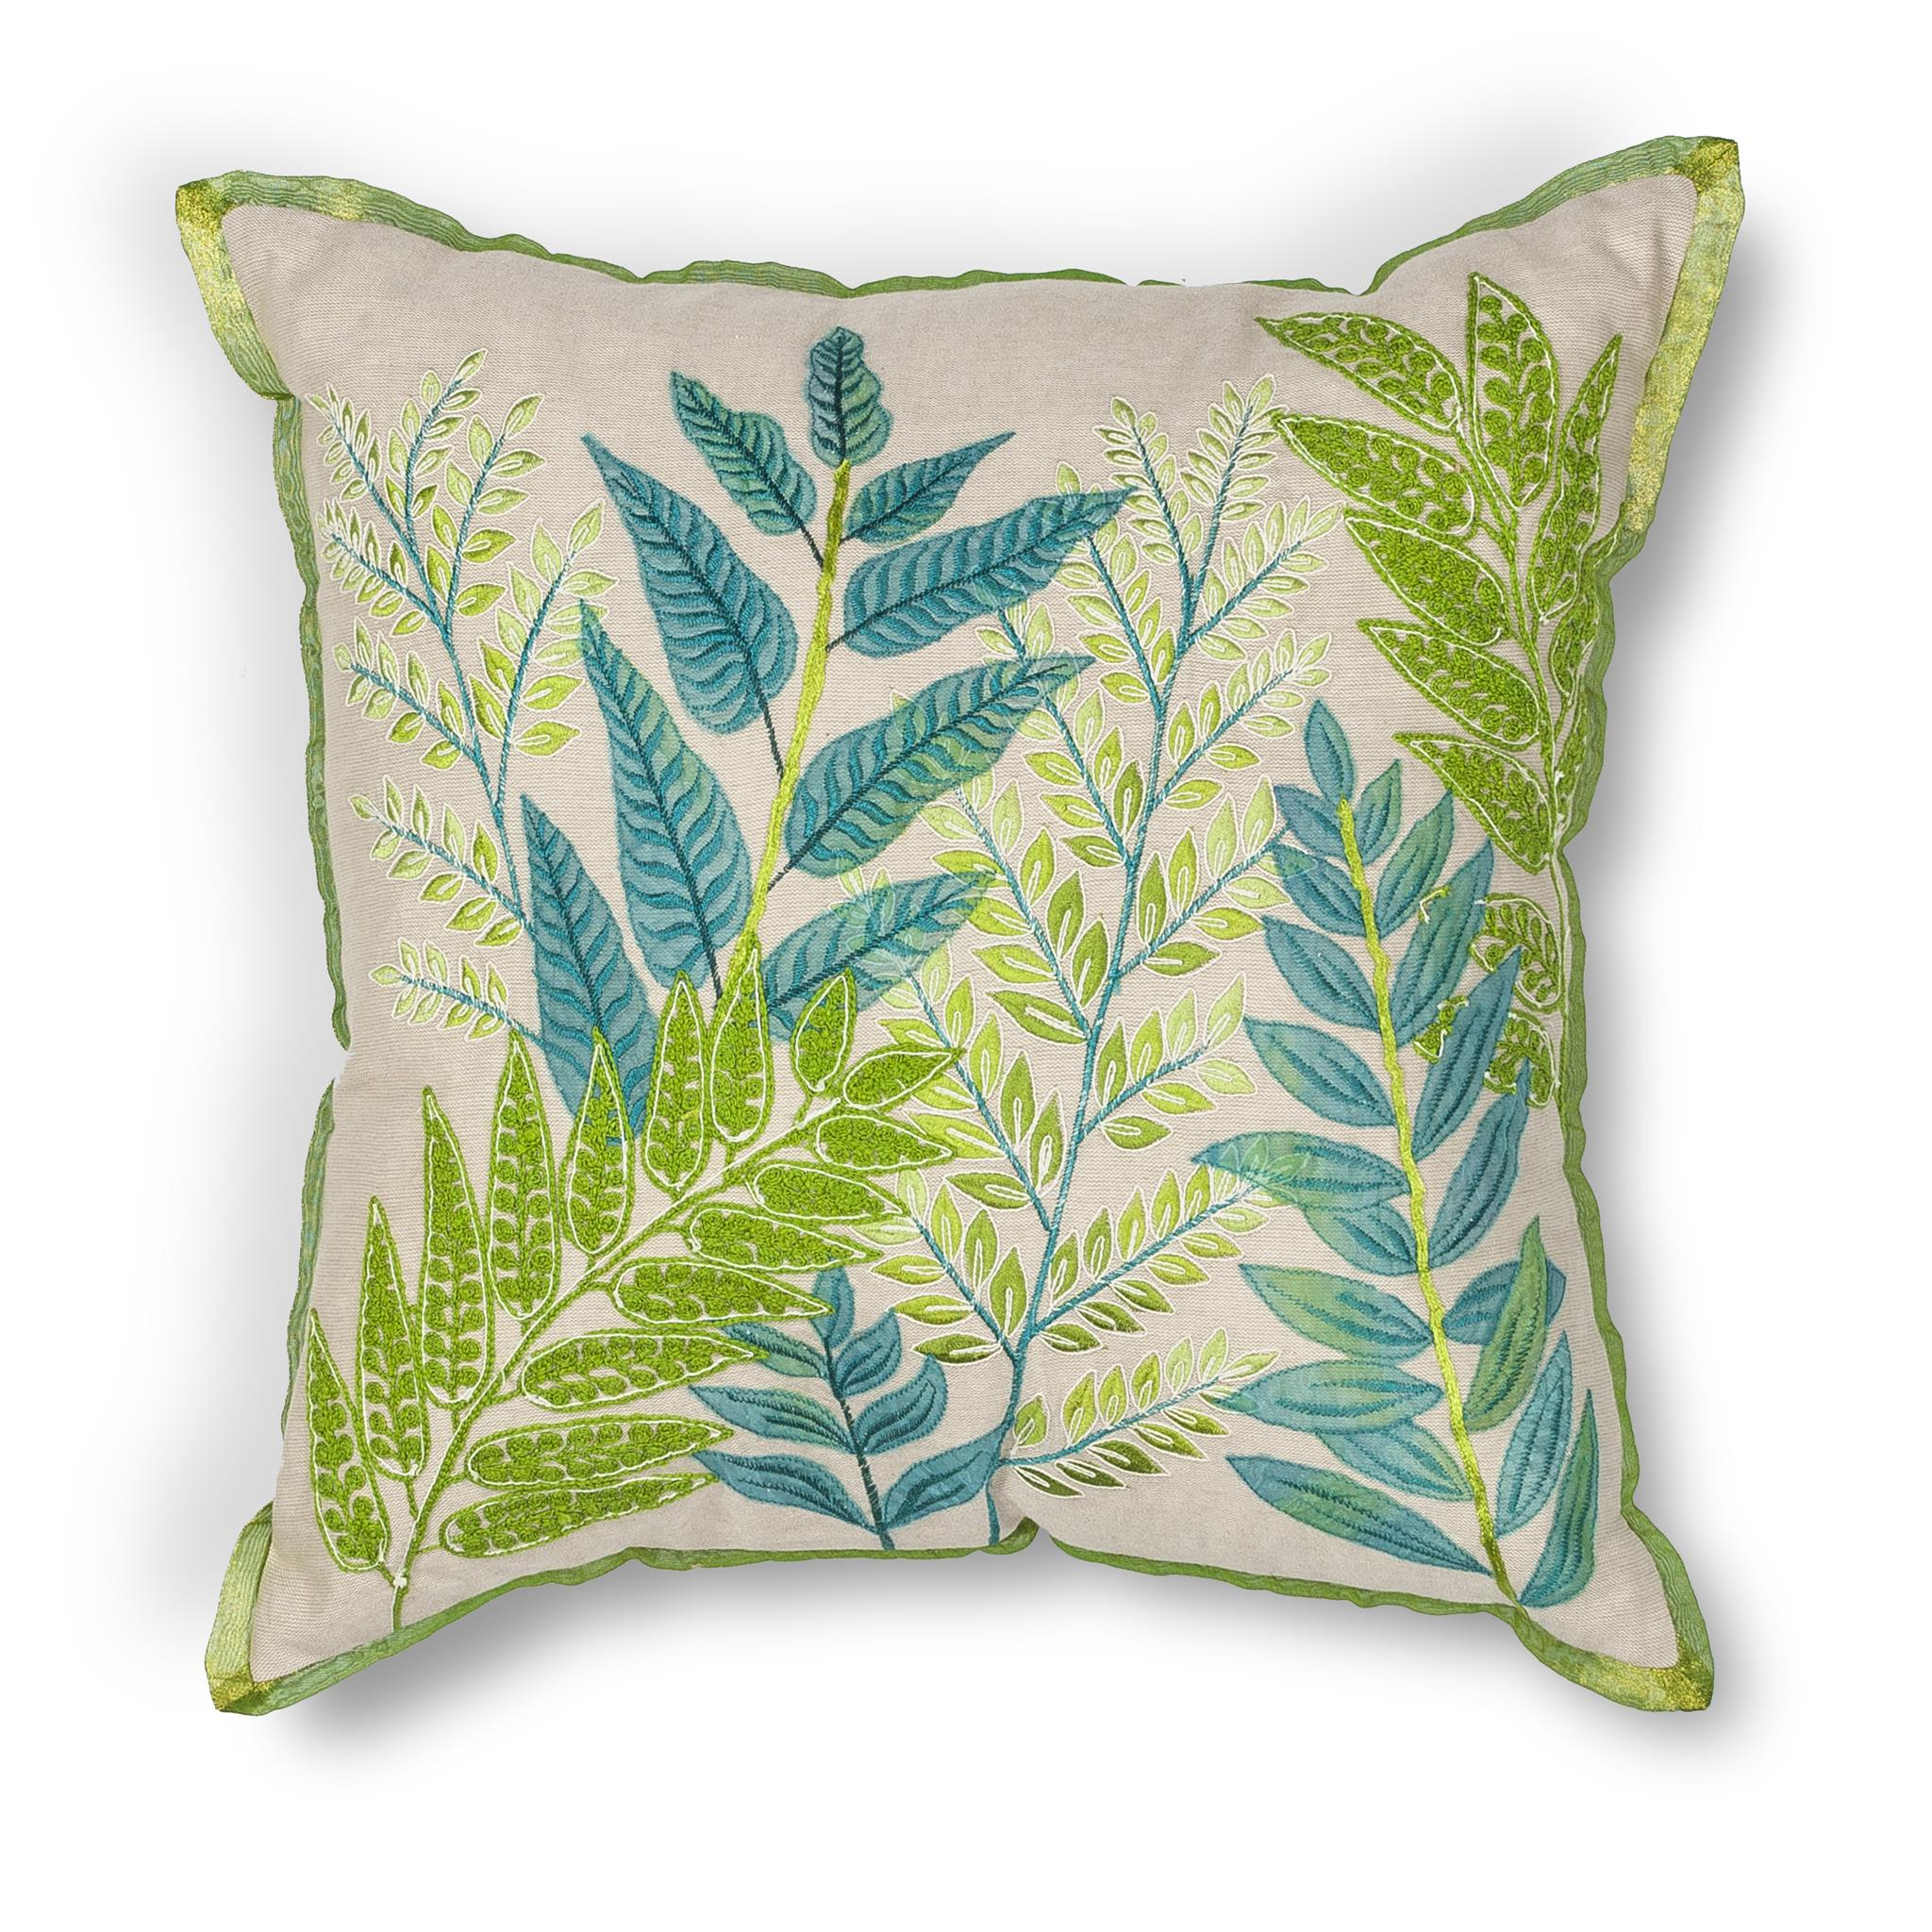 L192 Donny Osmond Home Blue-Green Garden Pillow